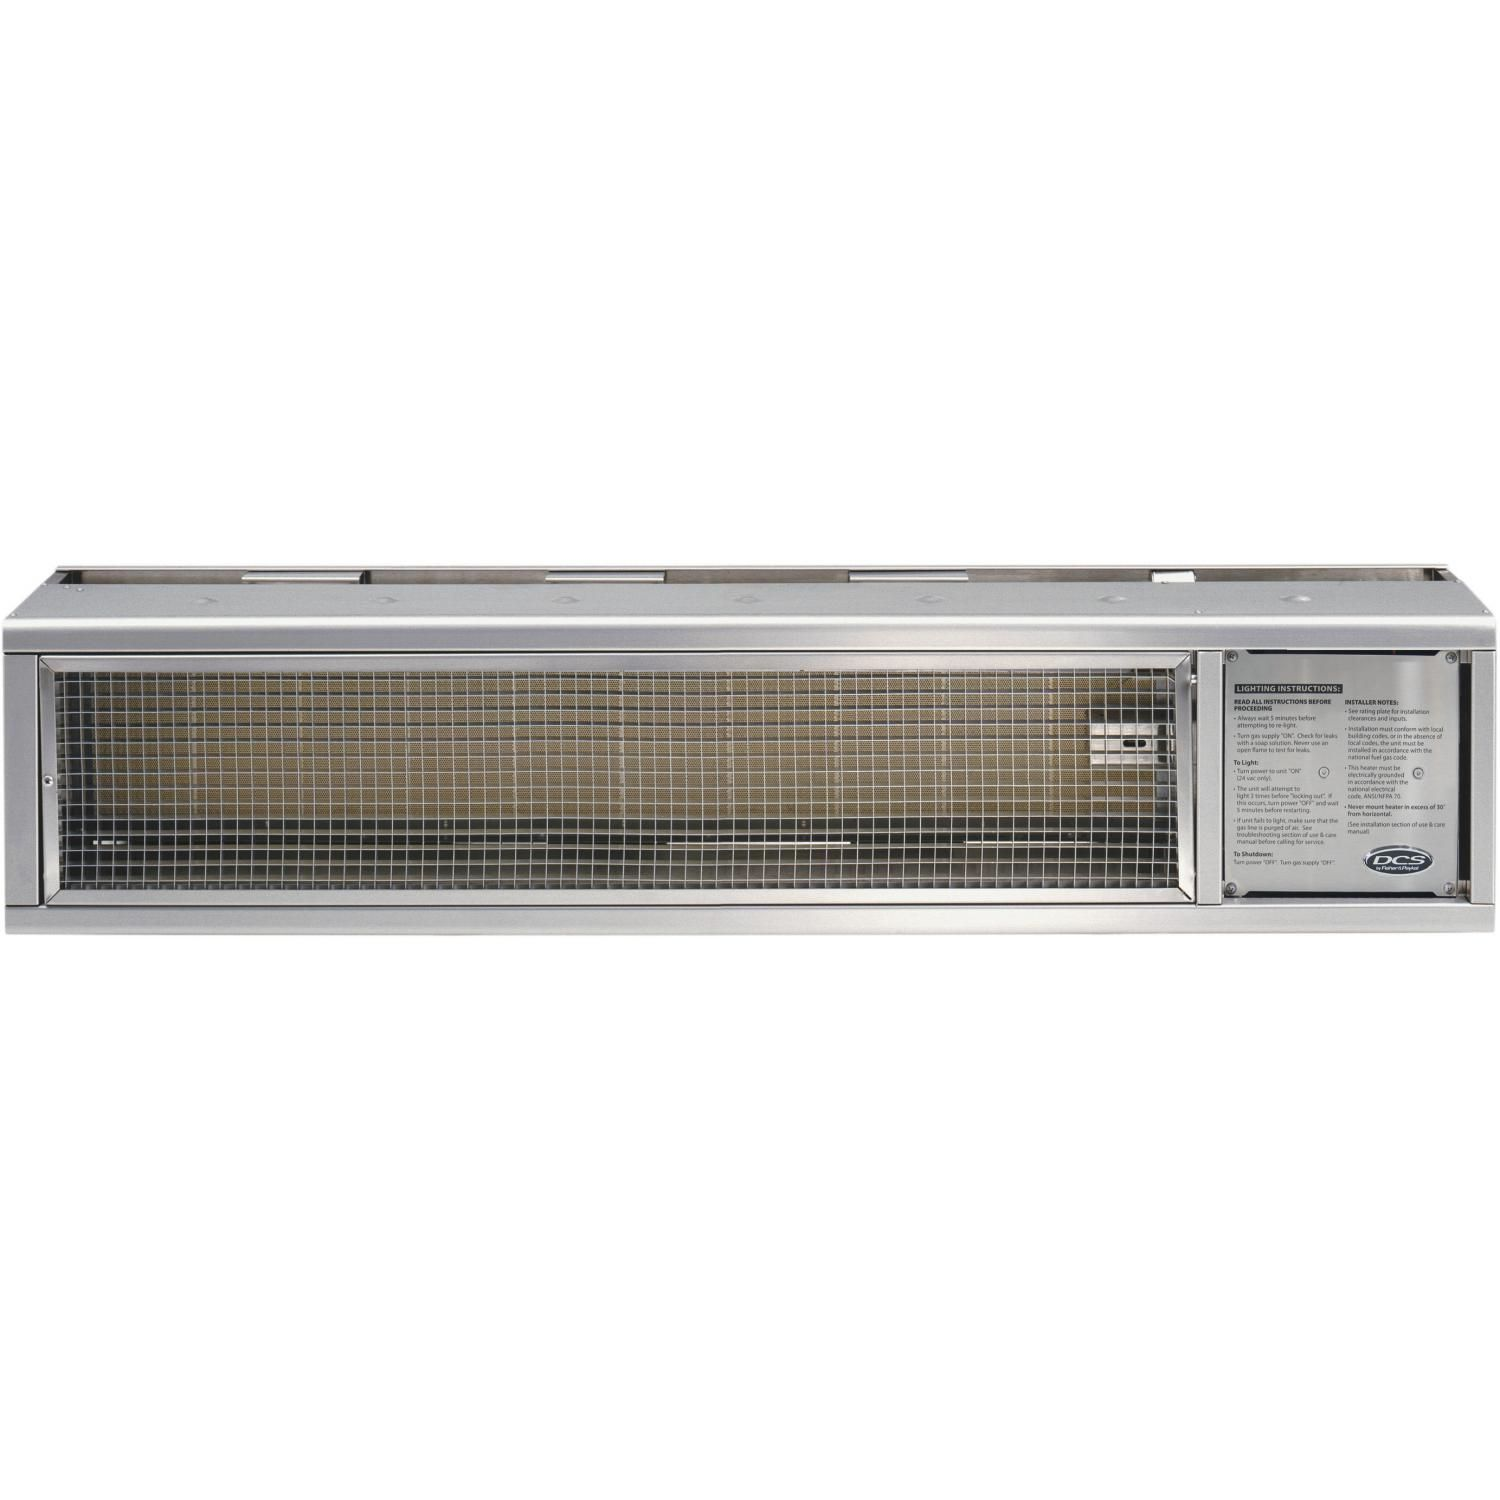 Dcs Built In Natural Gas Patio Heater Stainless Steel Drh48n Gas Patio Heater Natural Gas Patio Heater Patio Heater